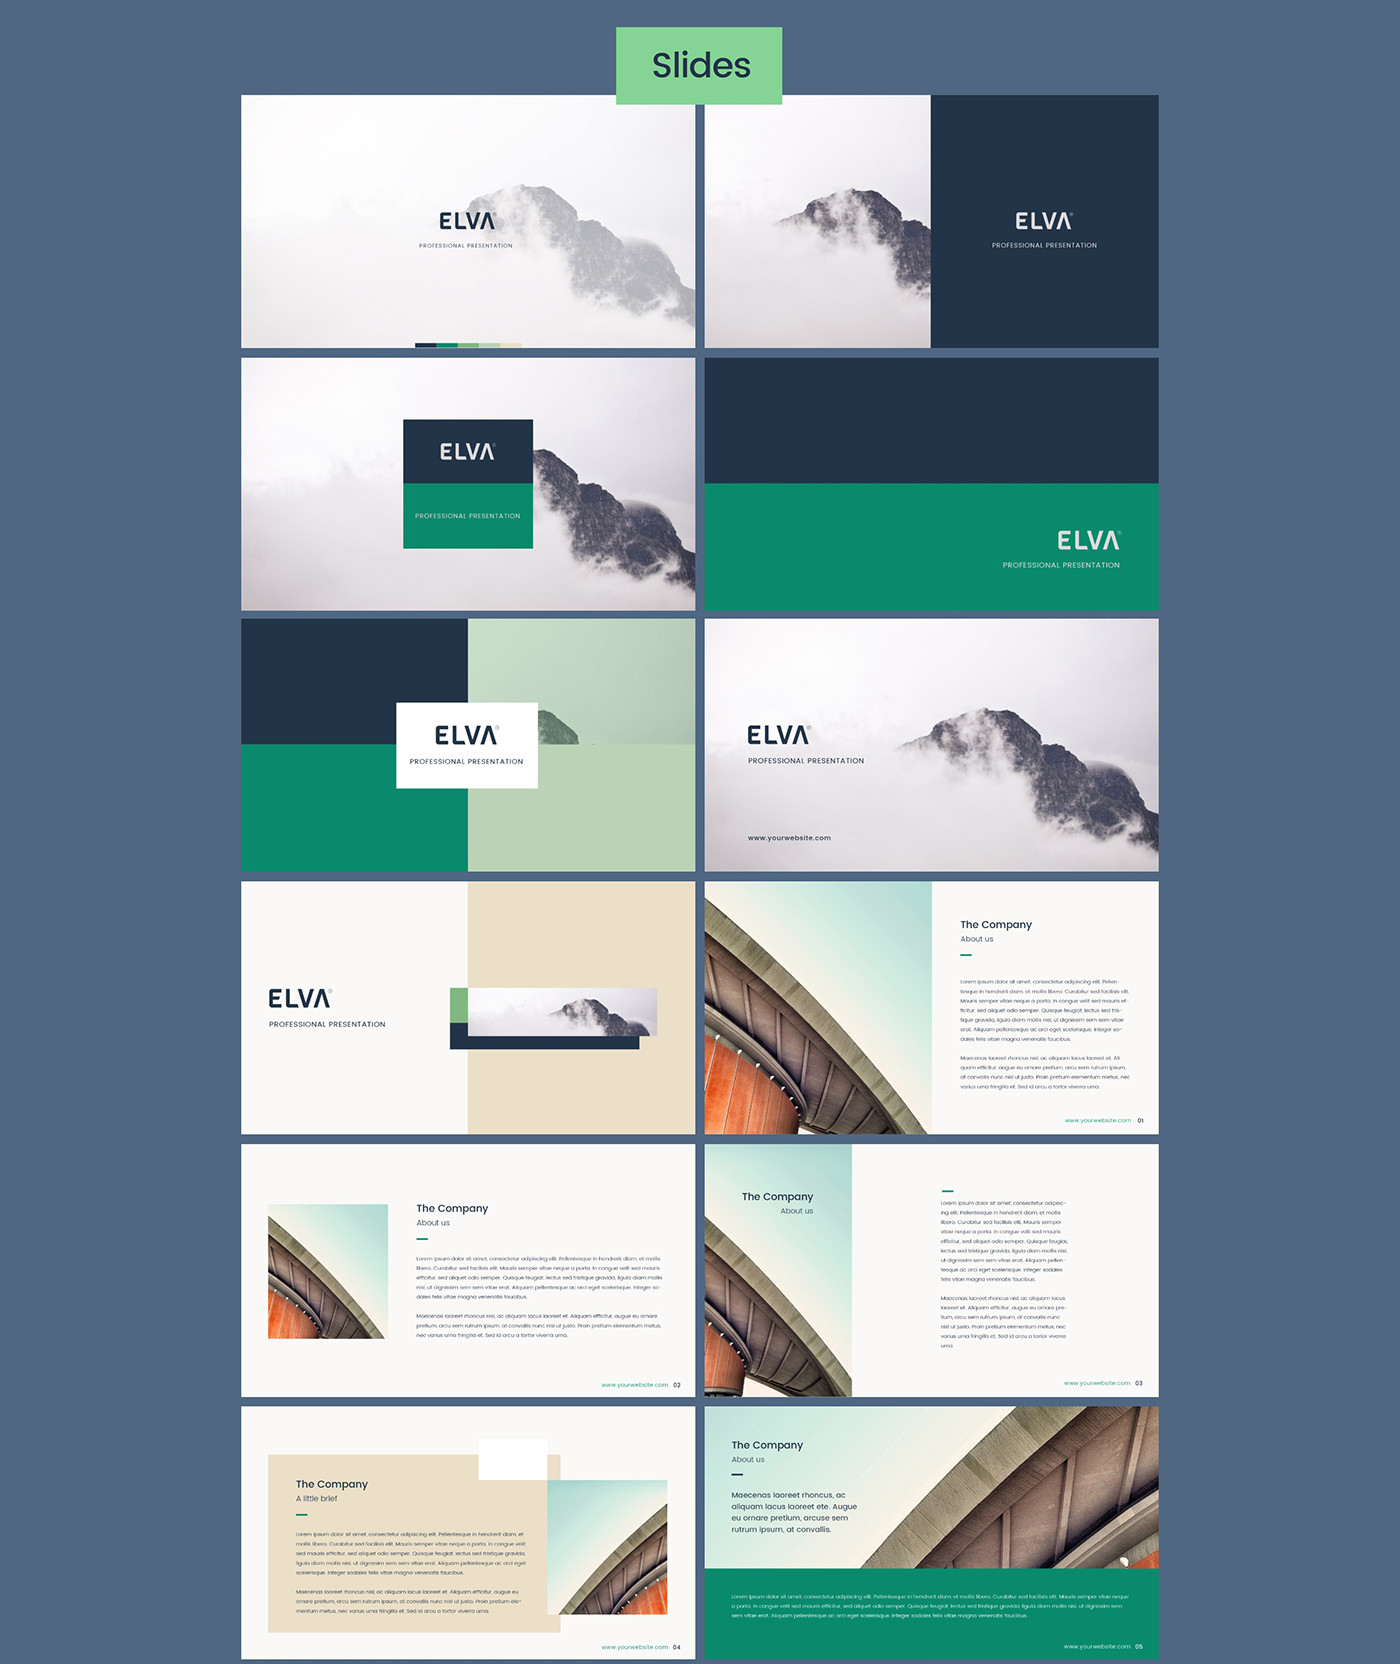 21 powerpoint presentation templates ppt pptx download